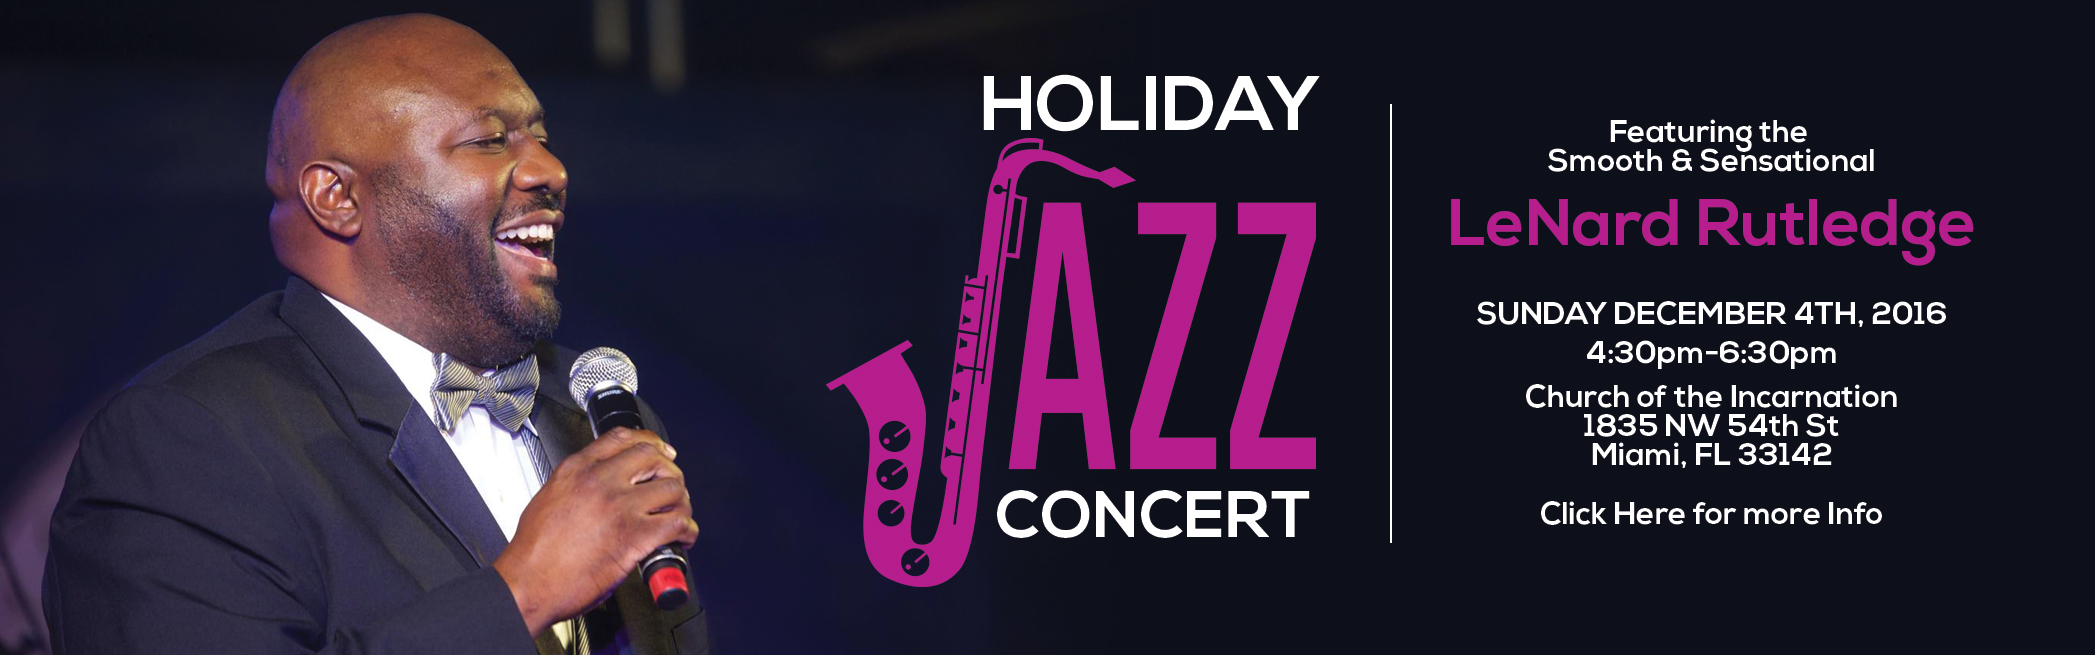 2016-holiday-jaz-concert-sliderr